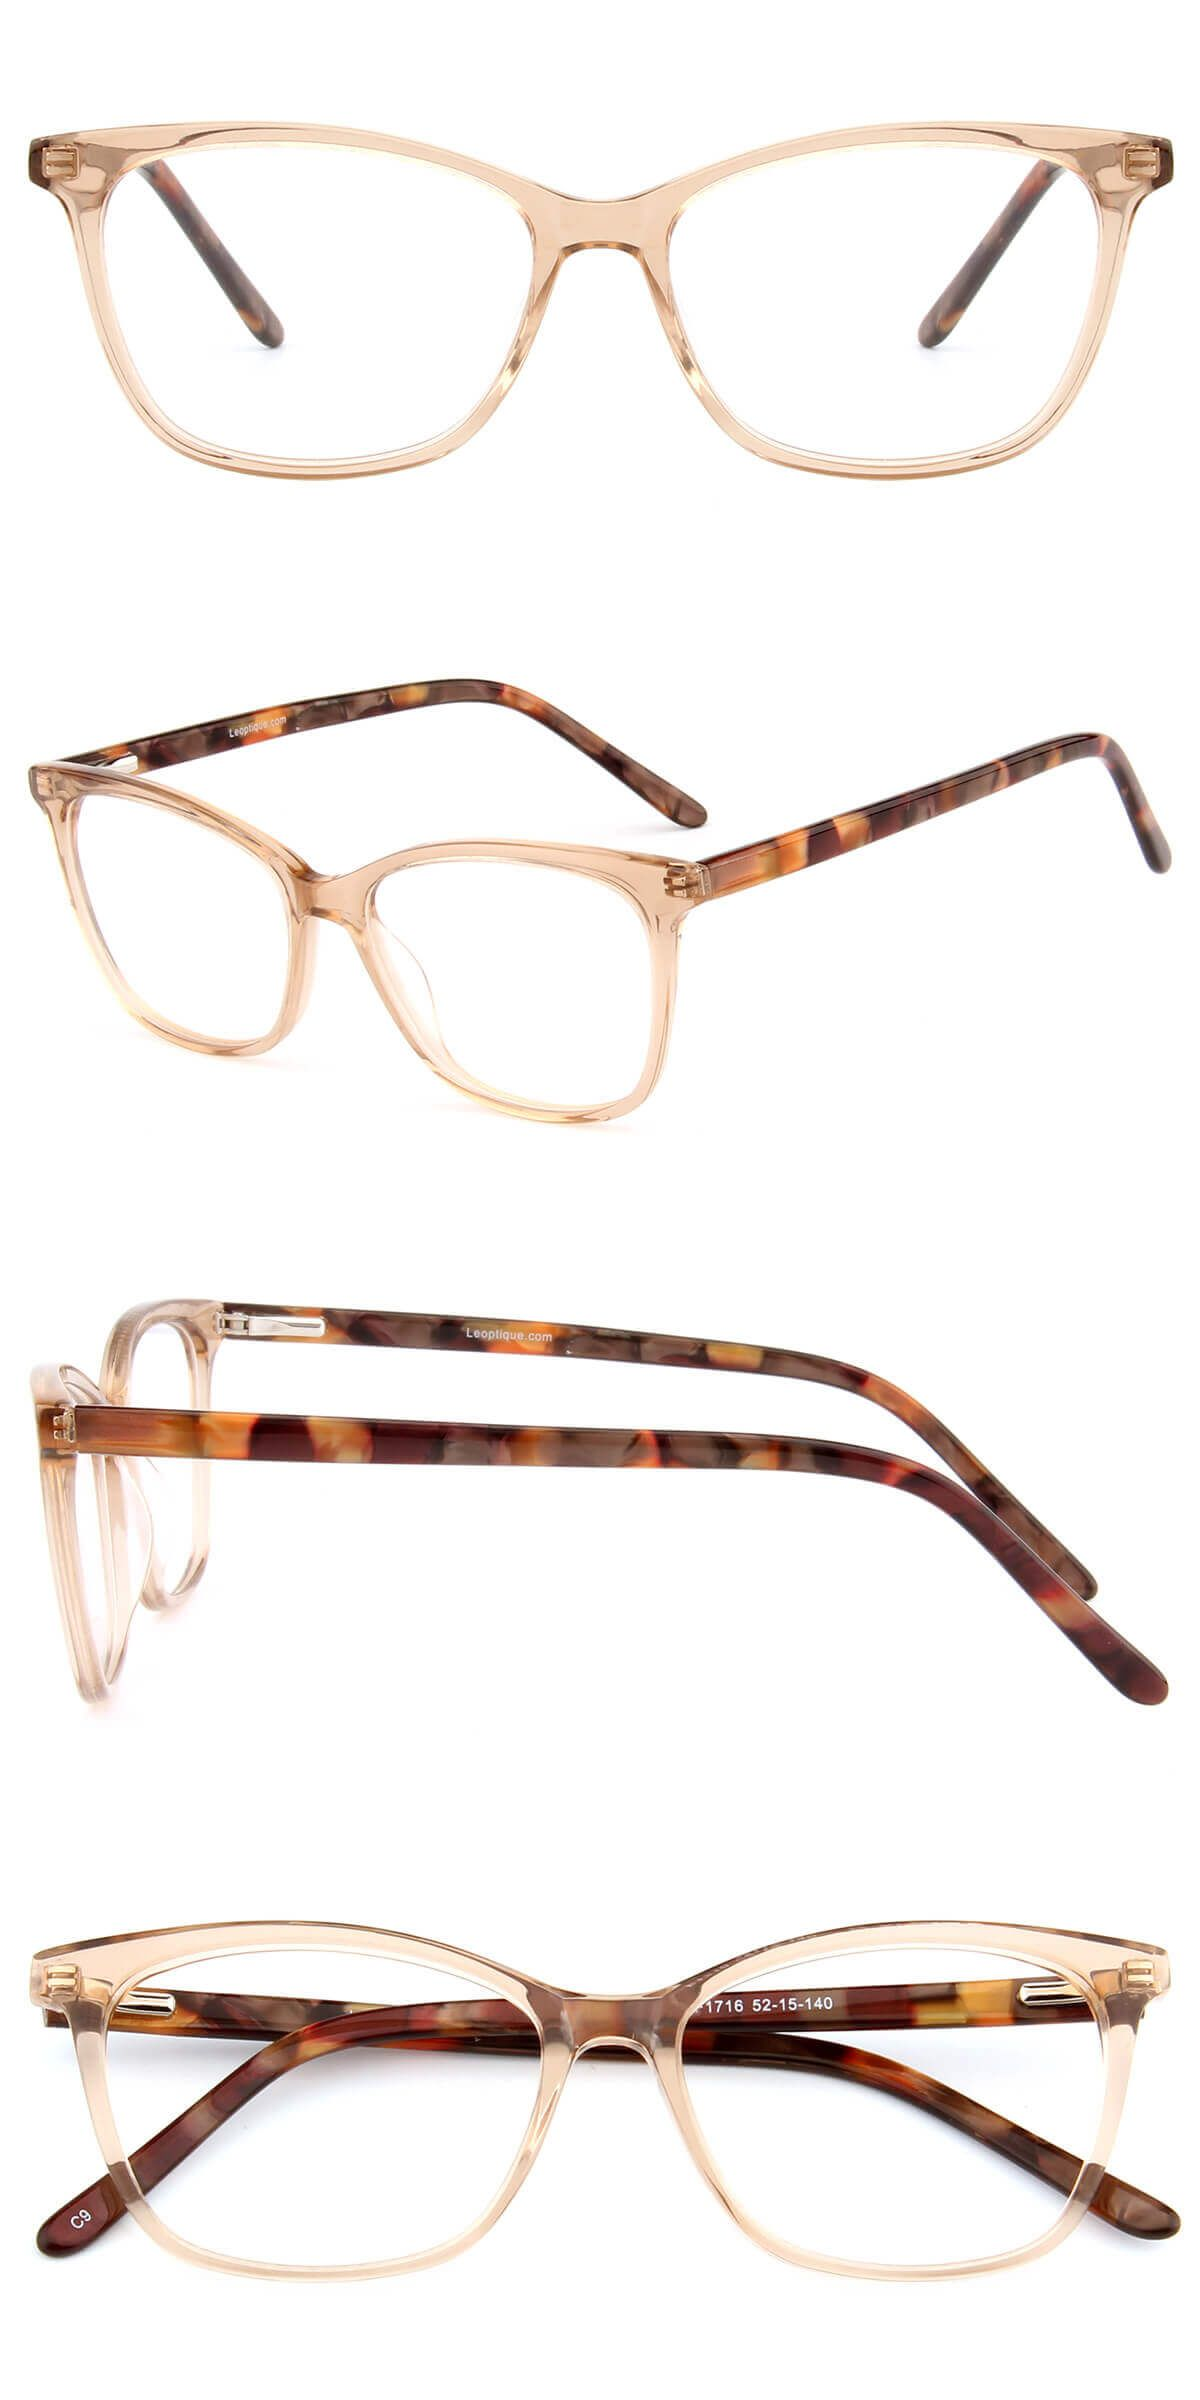 5642fcc071d These small-sized frames are made of translucent acetate